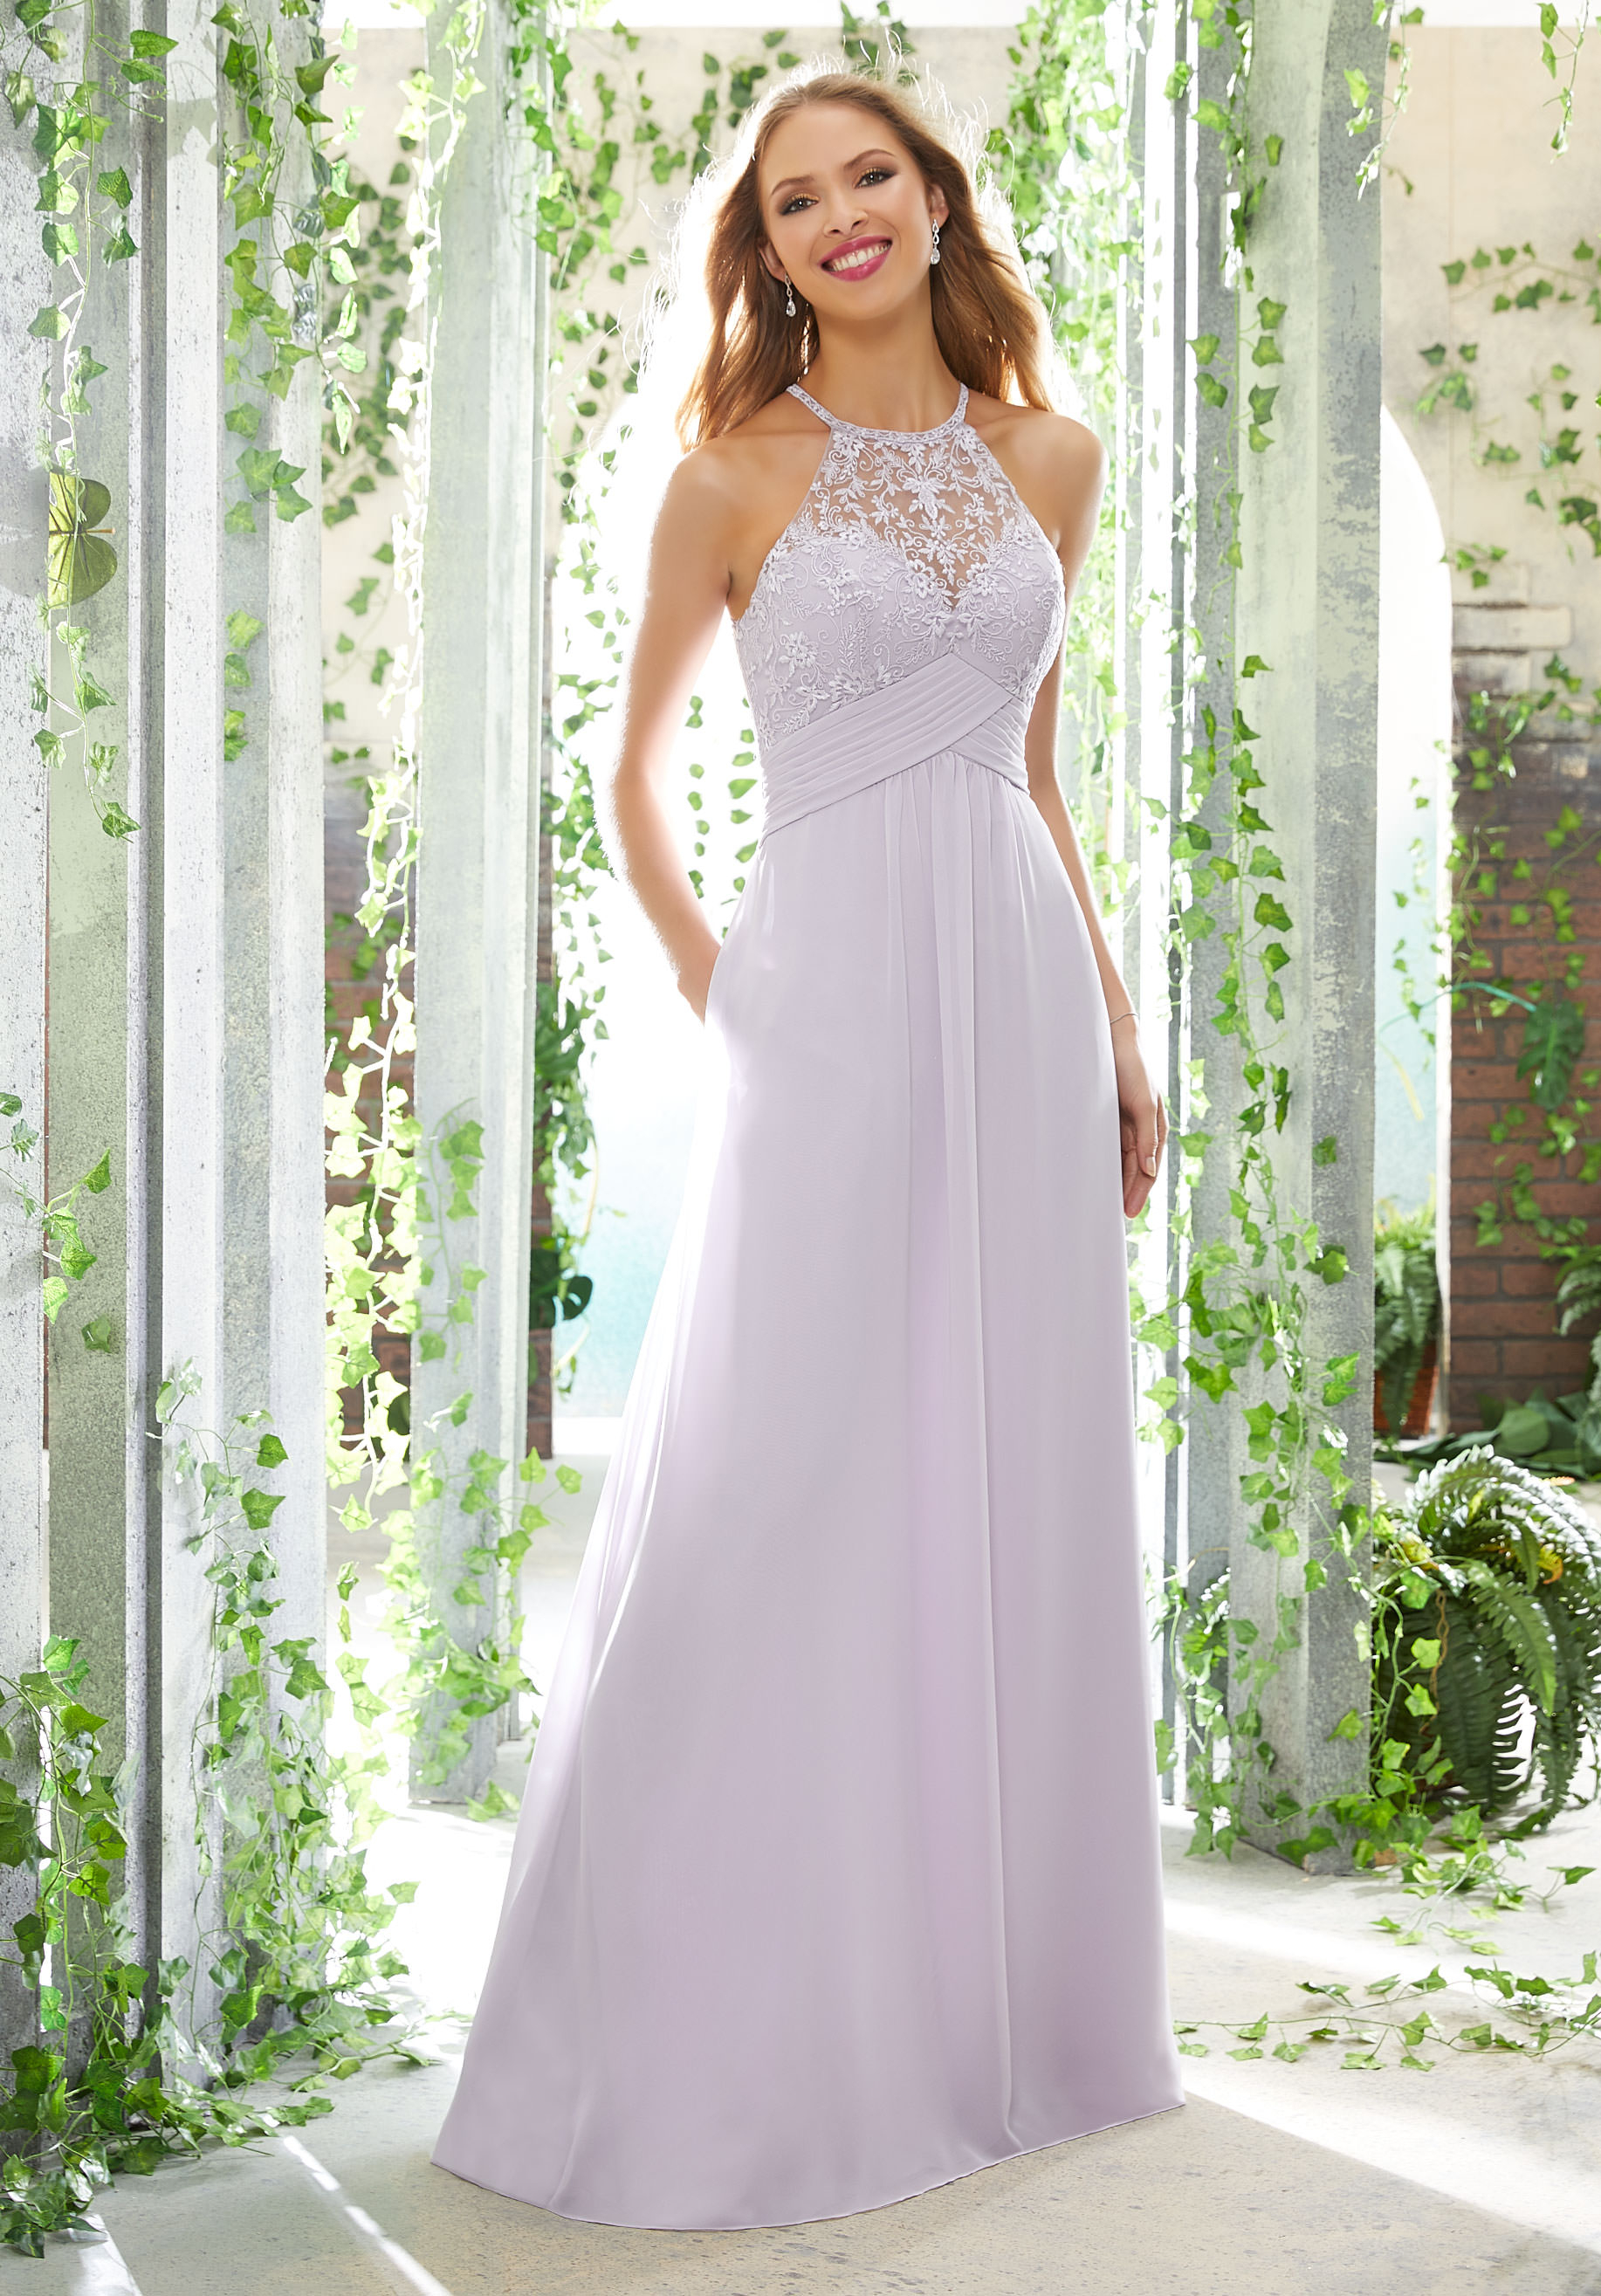 402437456e432 Mori Lee Bridesmaid Dresses – Fashion dresses